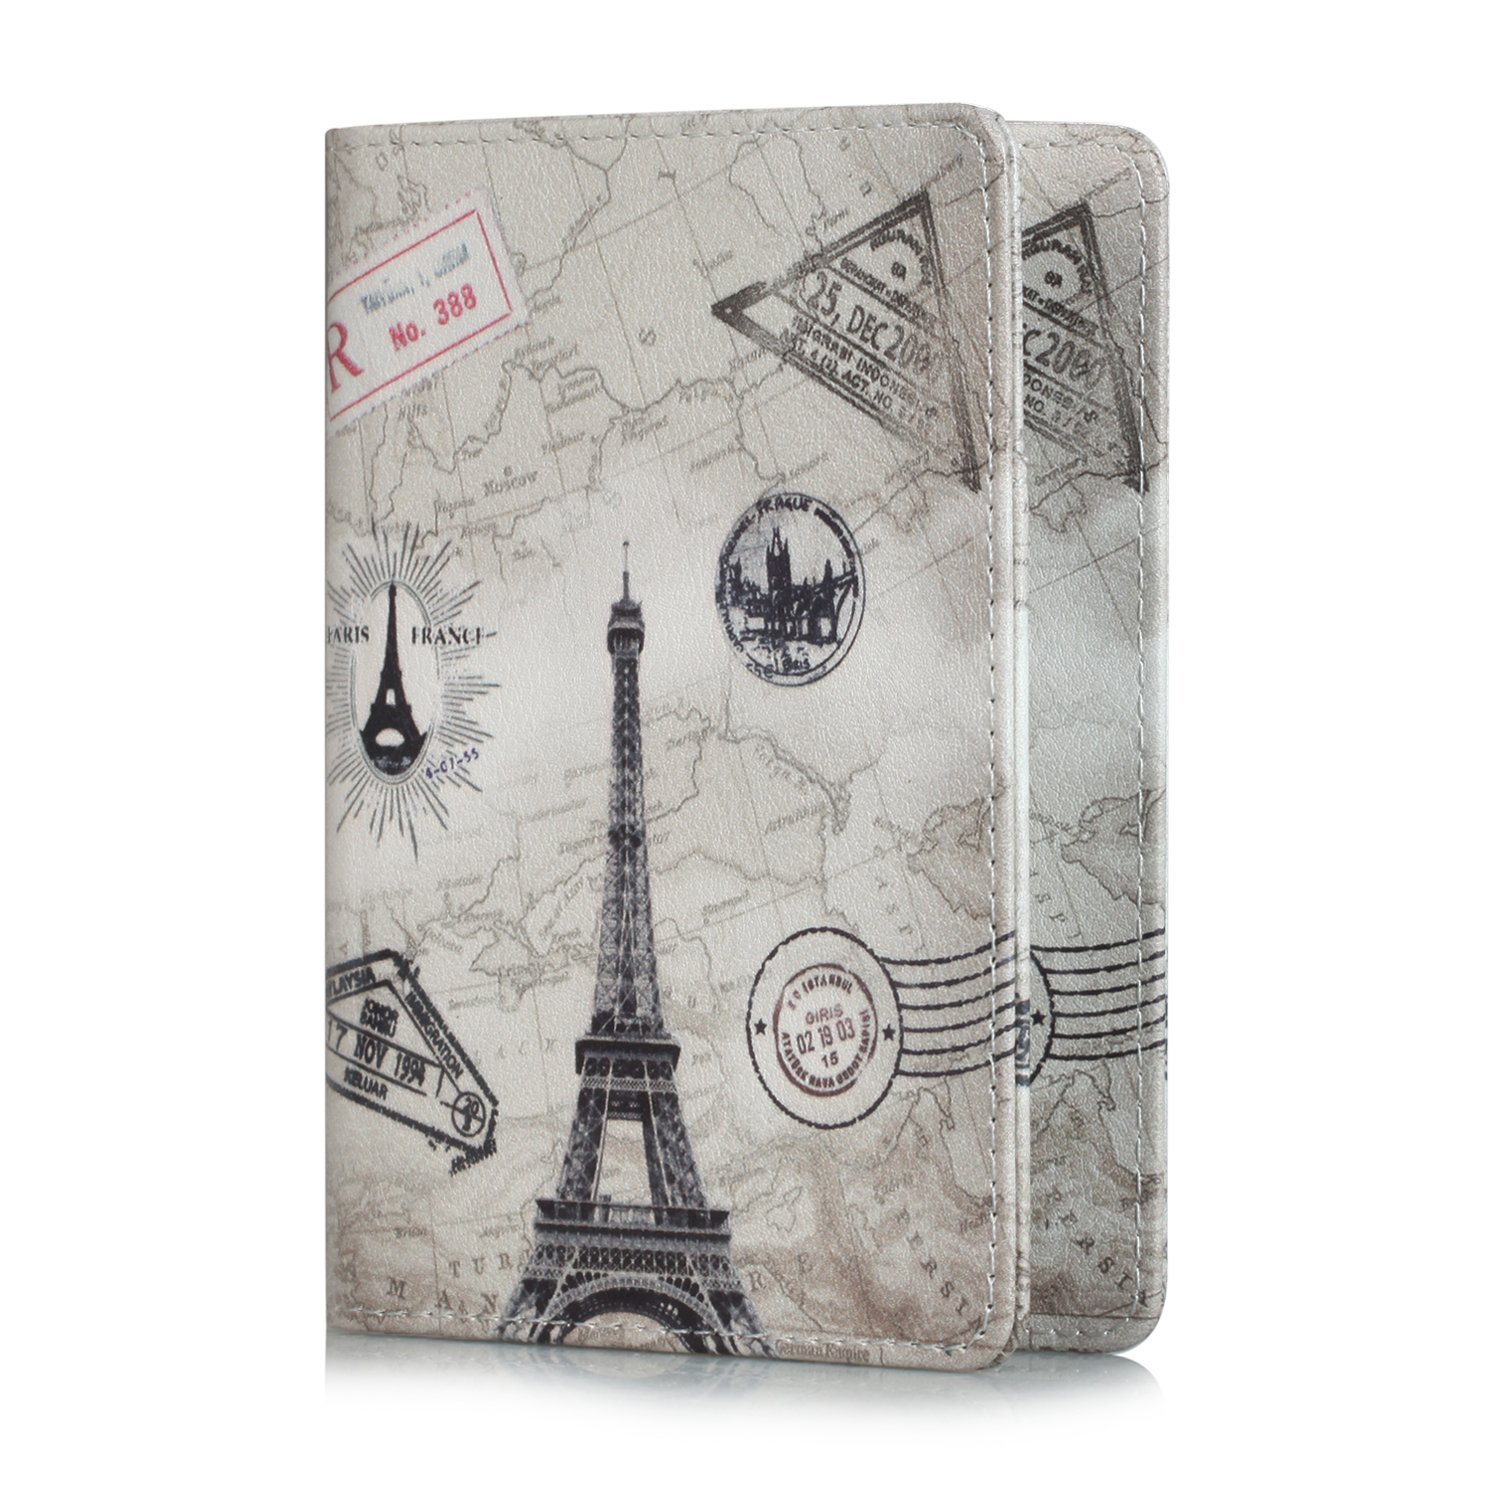 adc0c937928c Cheap Cut Boarding Passes, find Cut Boarding Passes deals on line at ...